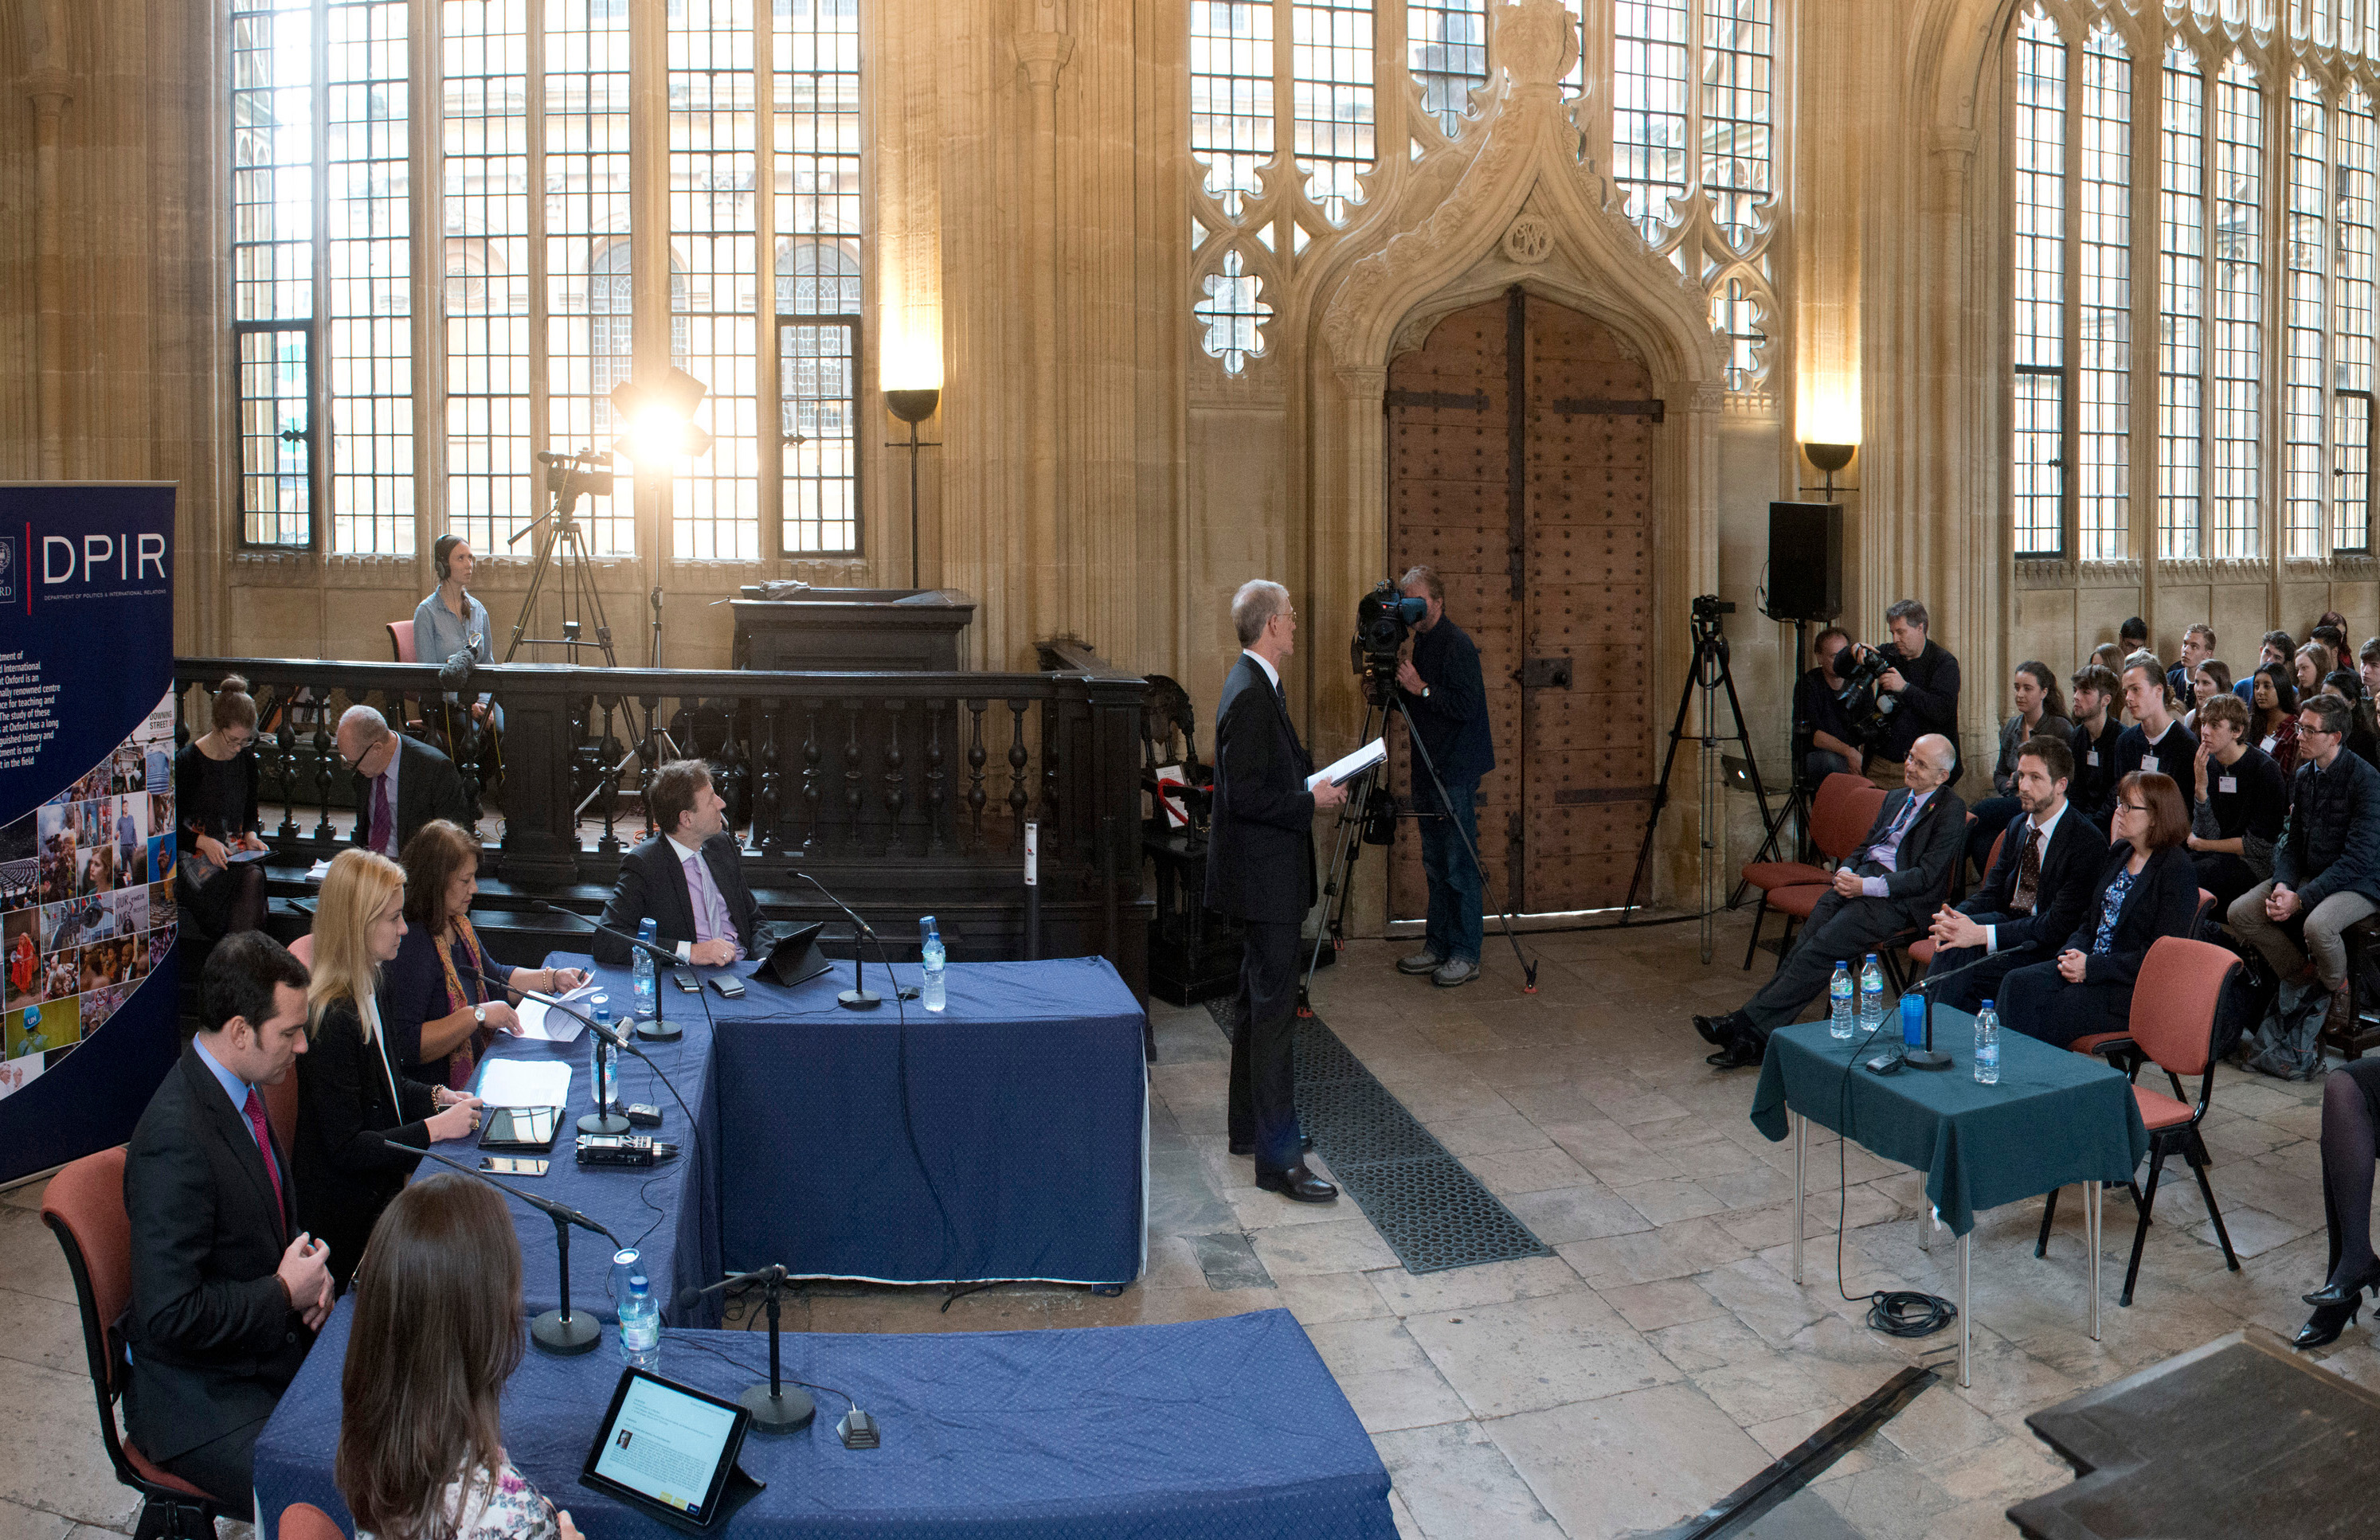 Parliament meets in Oxford for the first time in 350 years